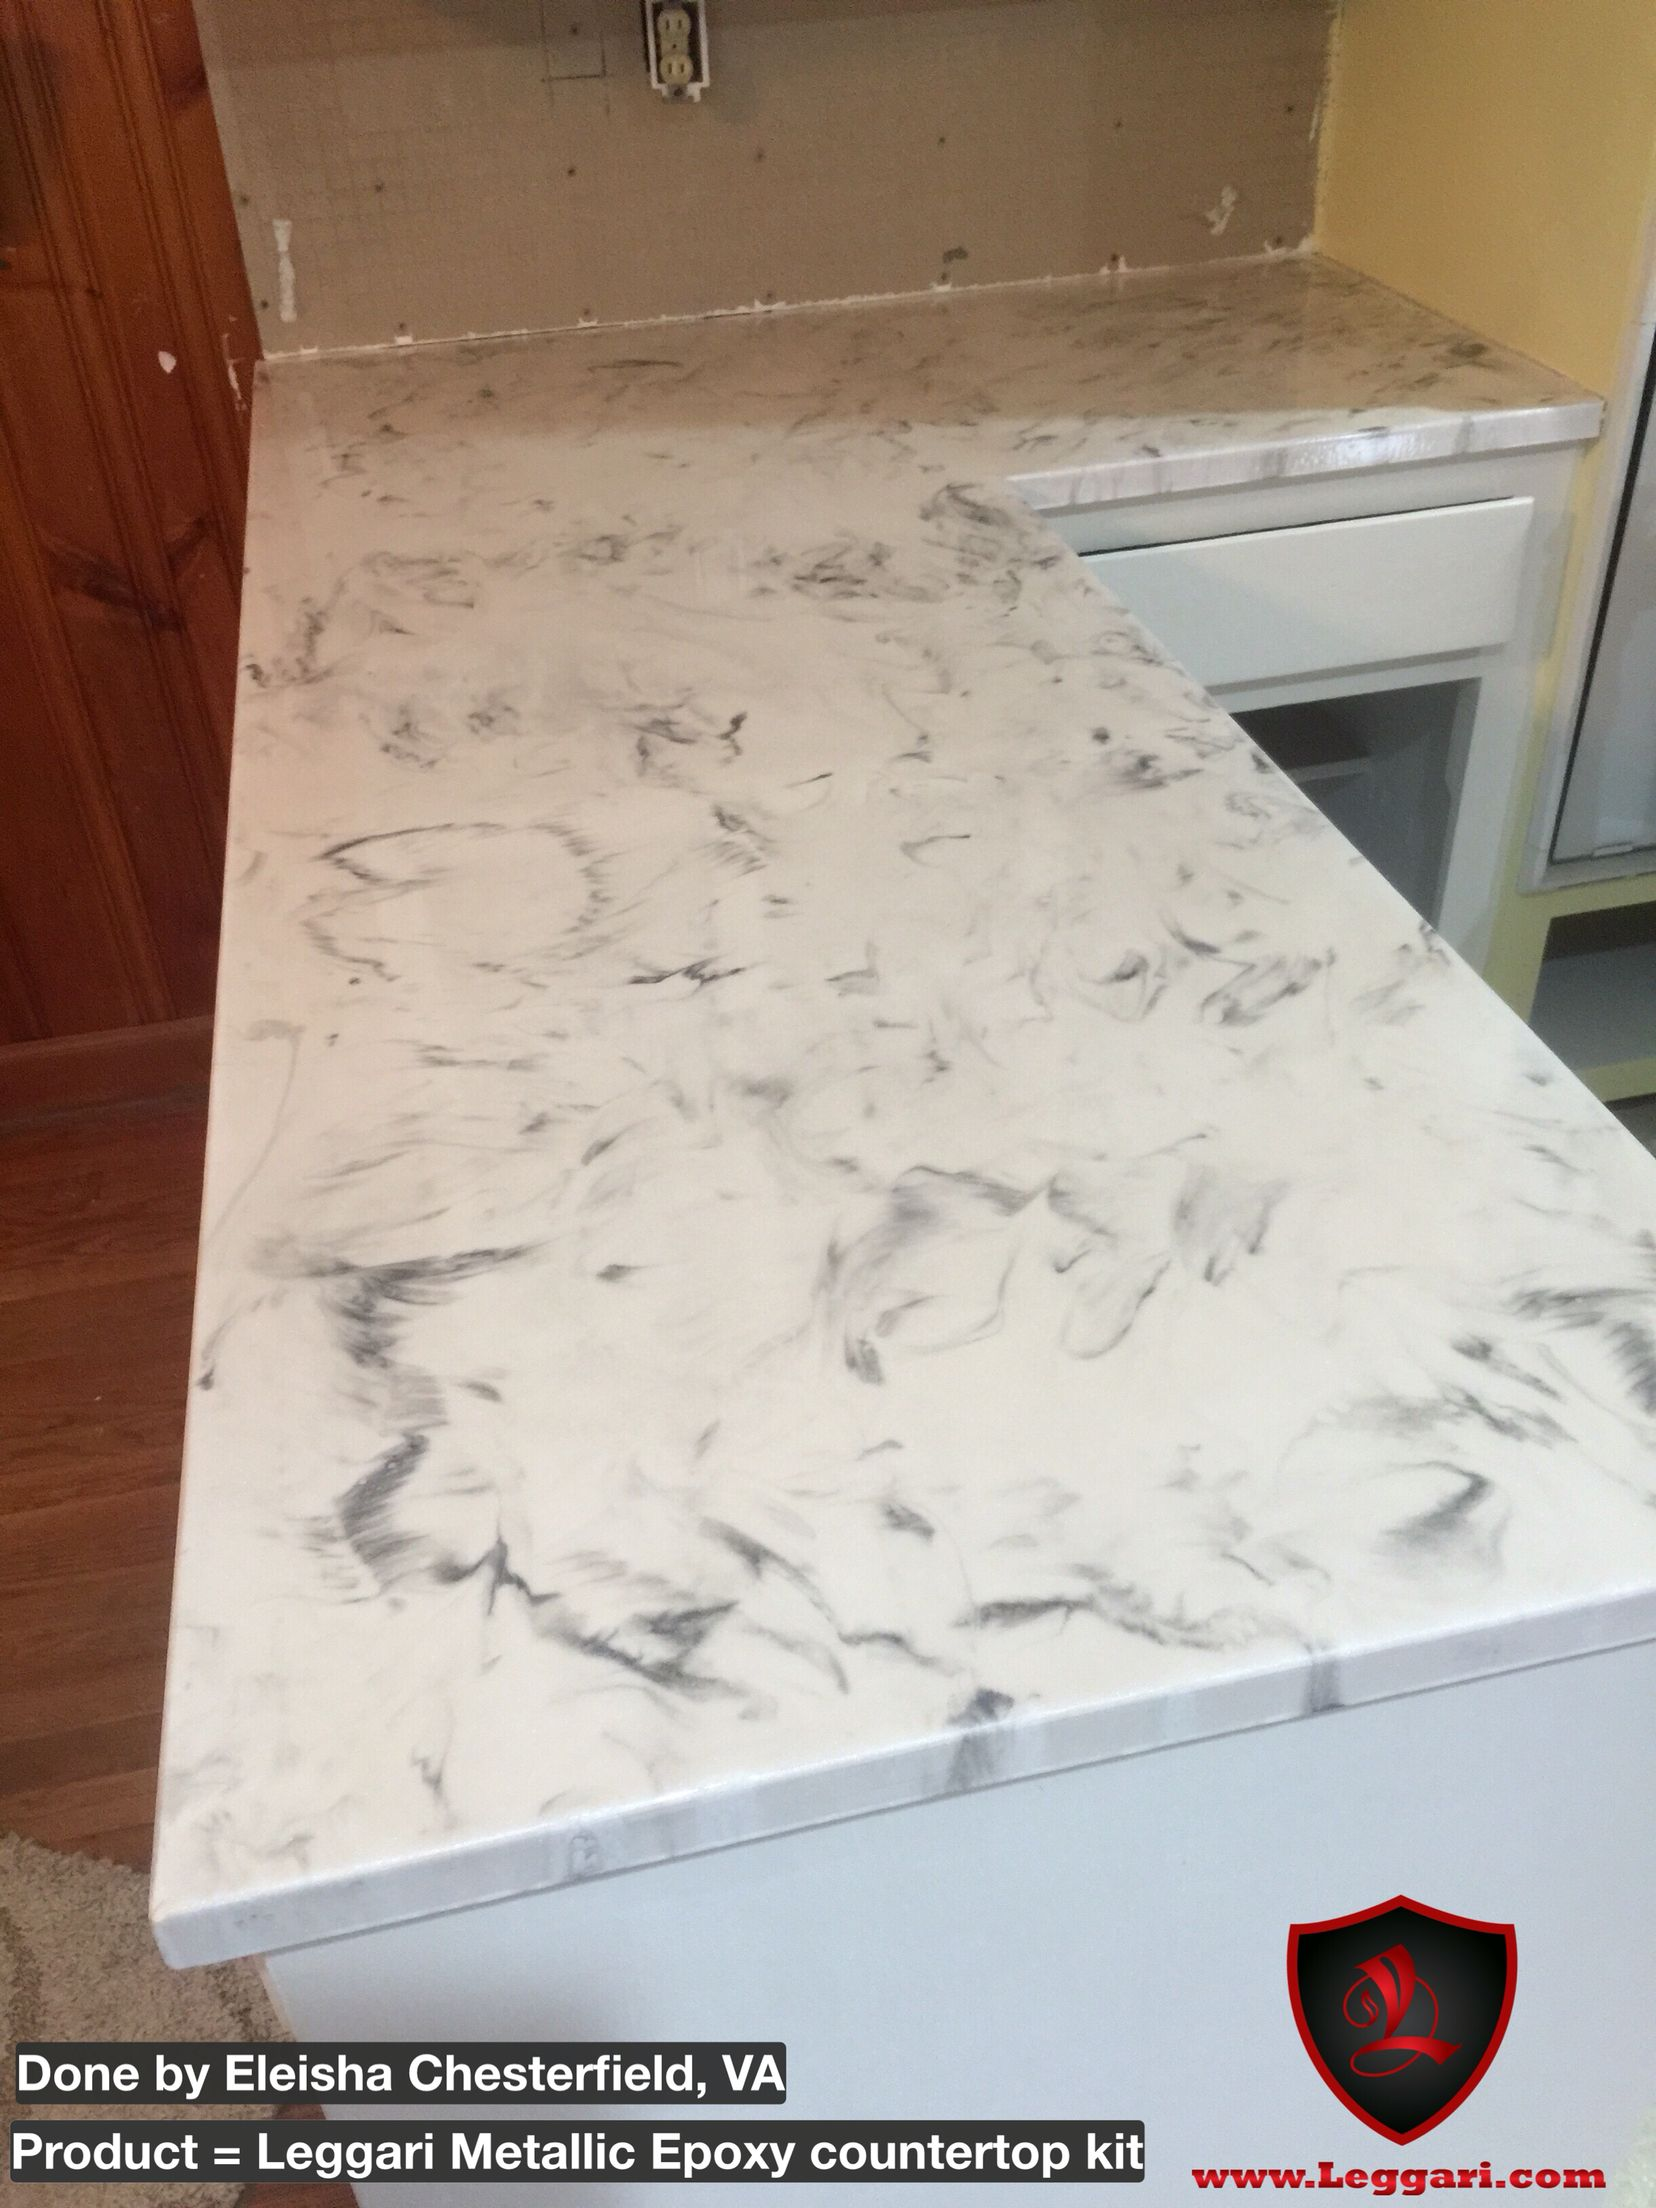 with a Leggari Products DIY Metallic Epoxy Countertop resurfacing ...